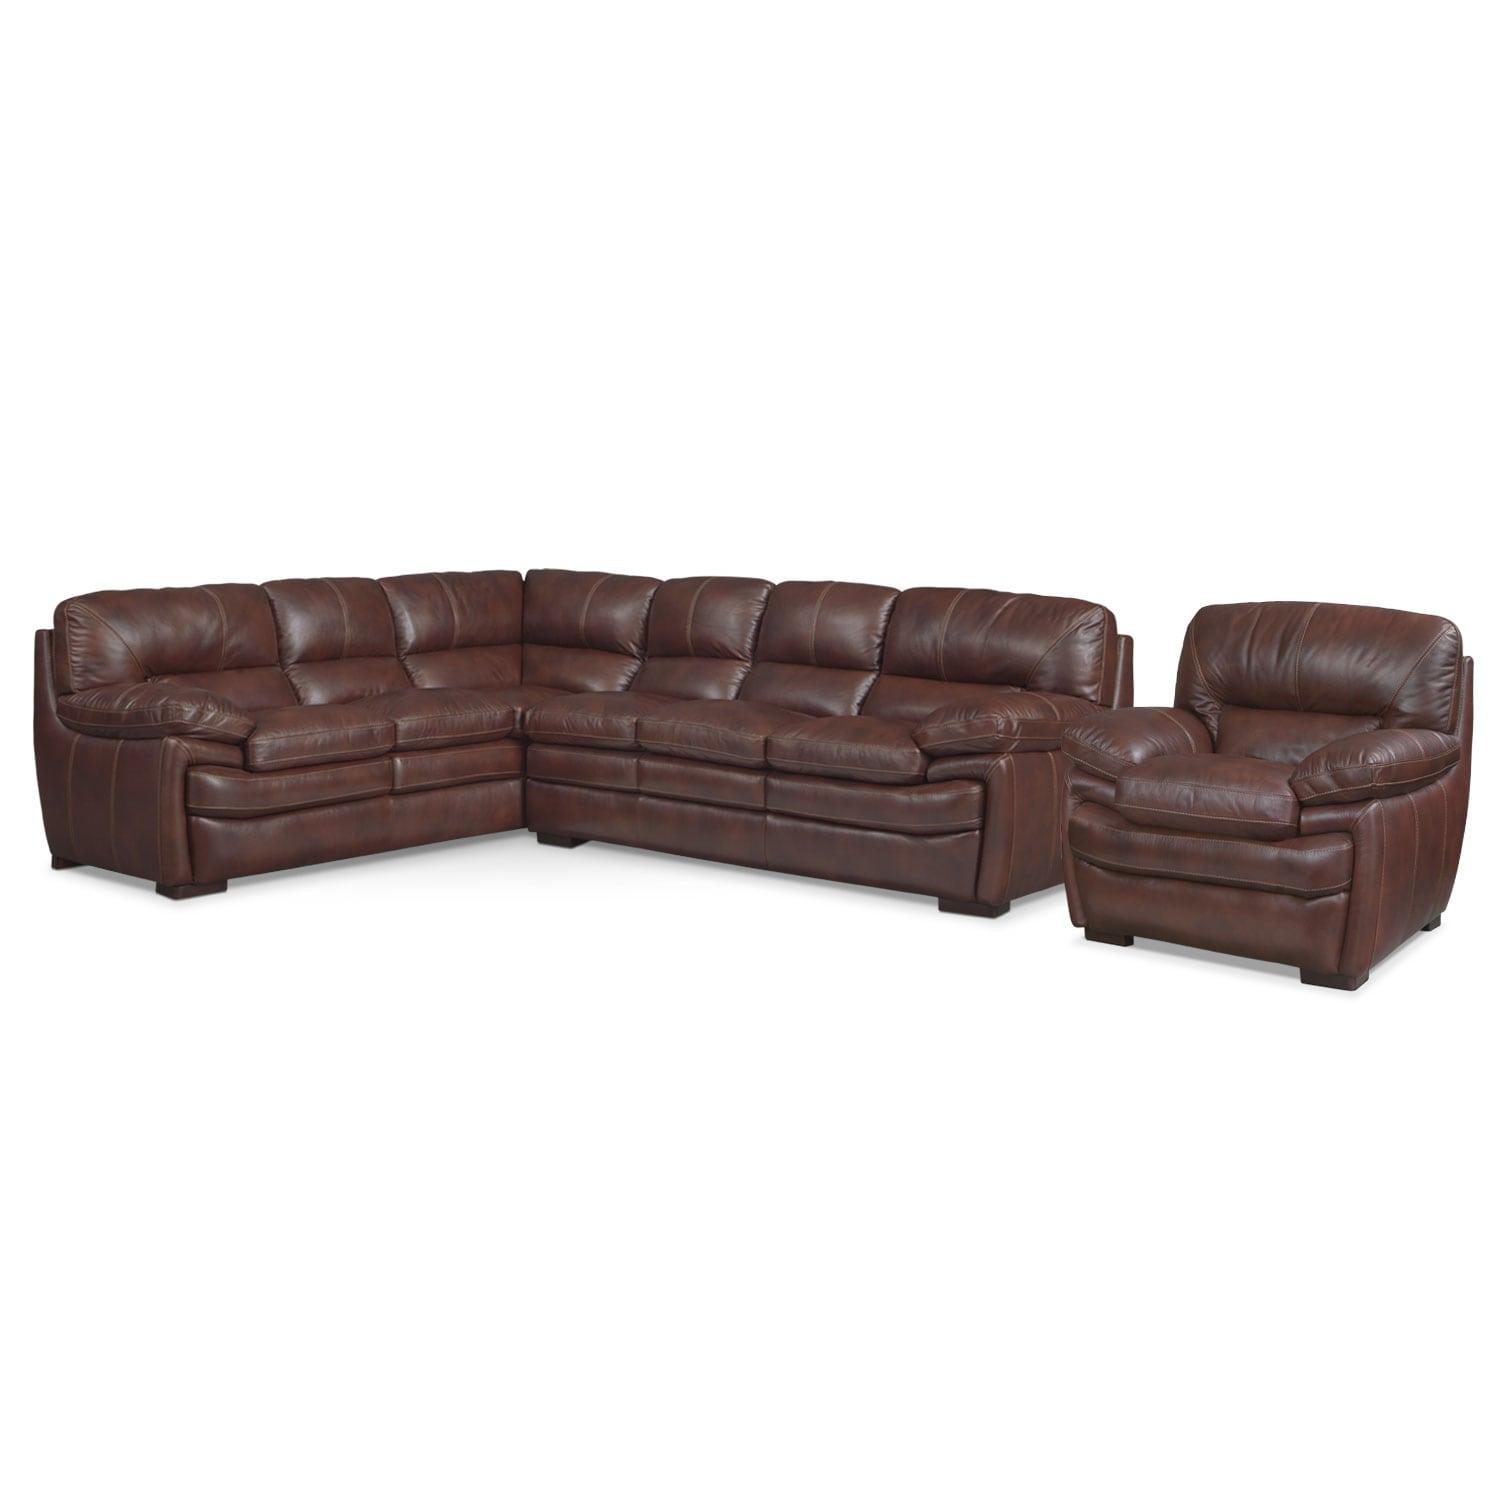 Living Room Furniture - Peyton Chestnut 2-Piece Sectional with Chair - Chestnut